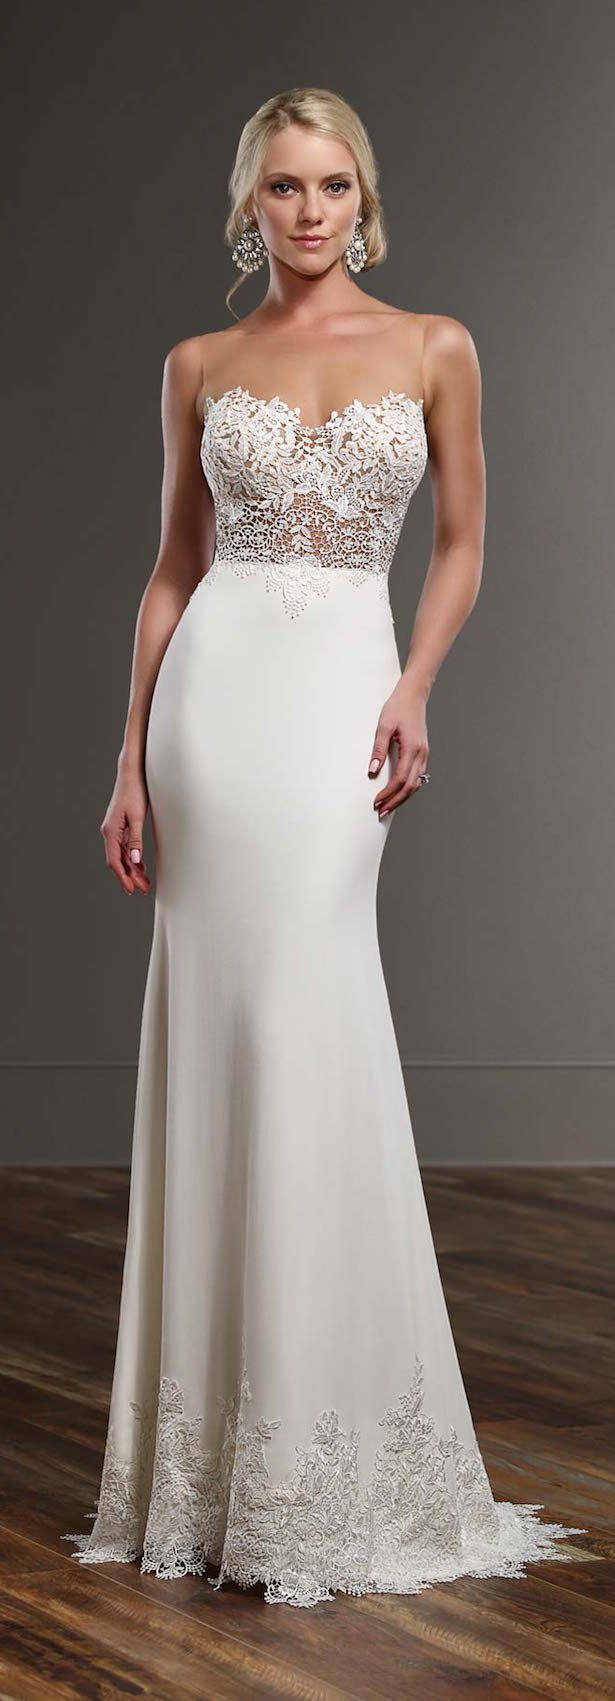 Best Wedding Dresses of 2016 - Martina Liana Spring 2016 Wedding Dress Clothing, Shoes & Jewelry : Women : dress for women http://amzn.to/2meoyF8